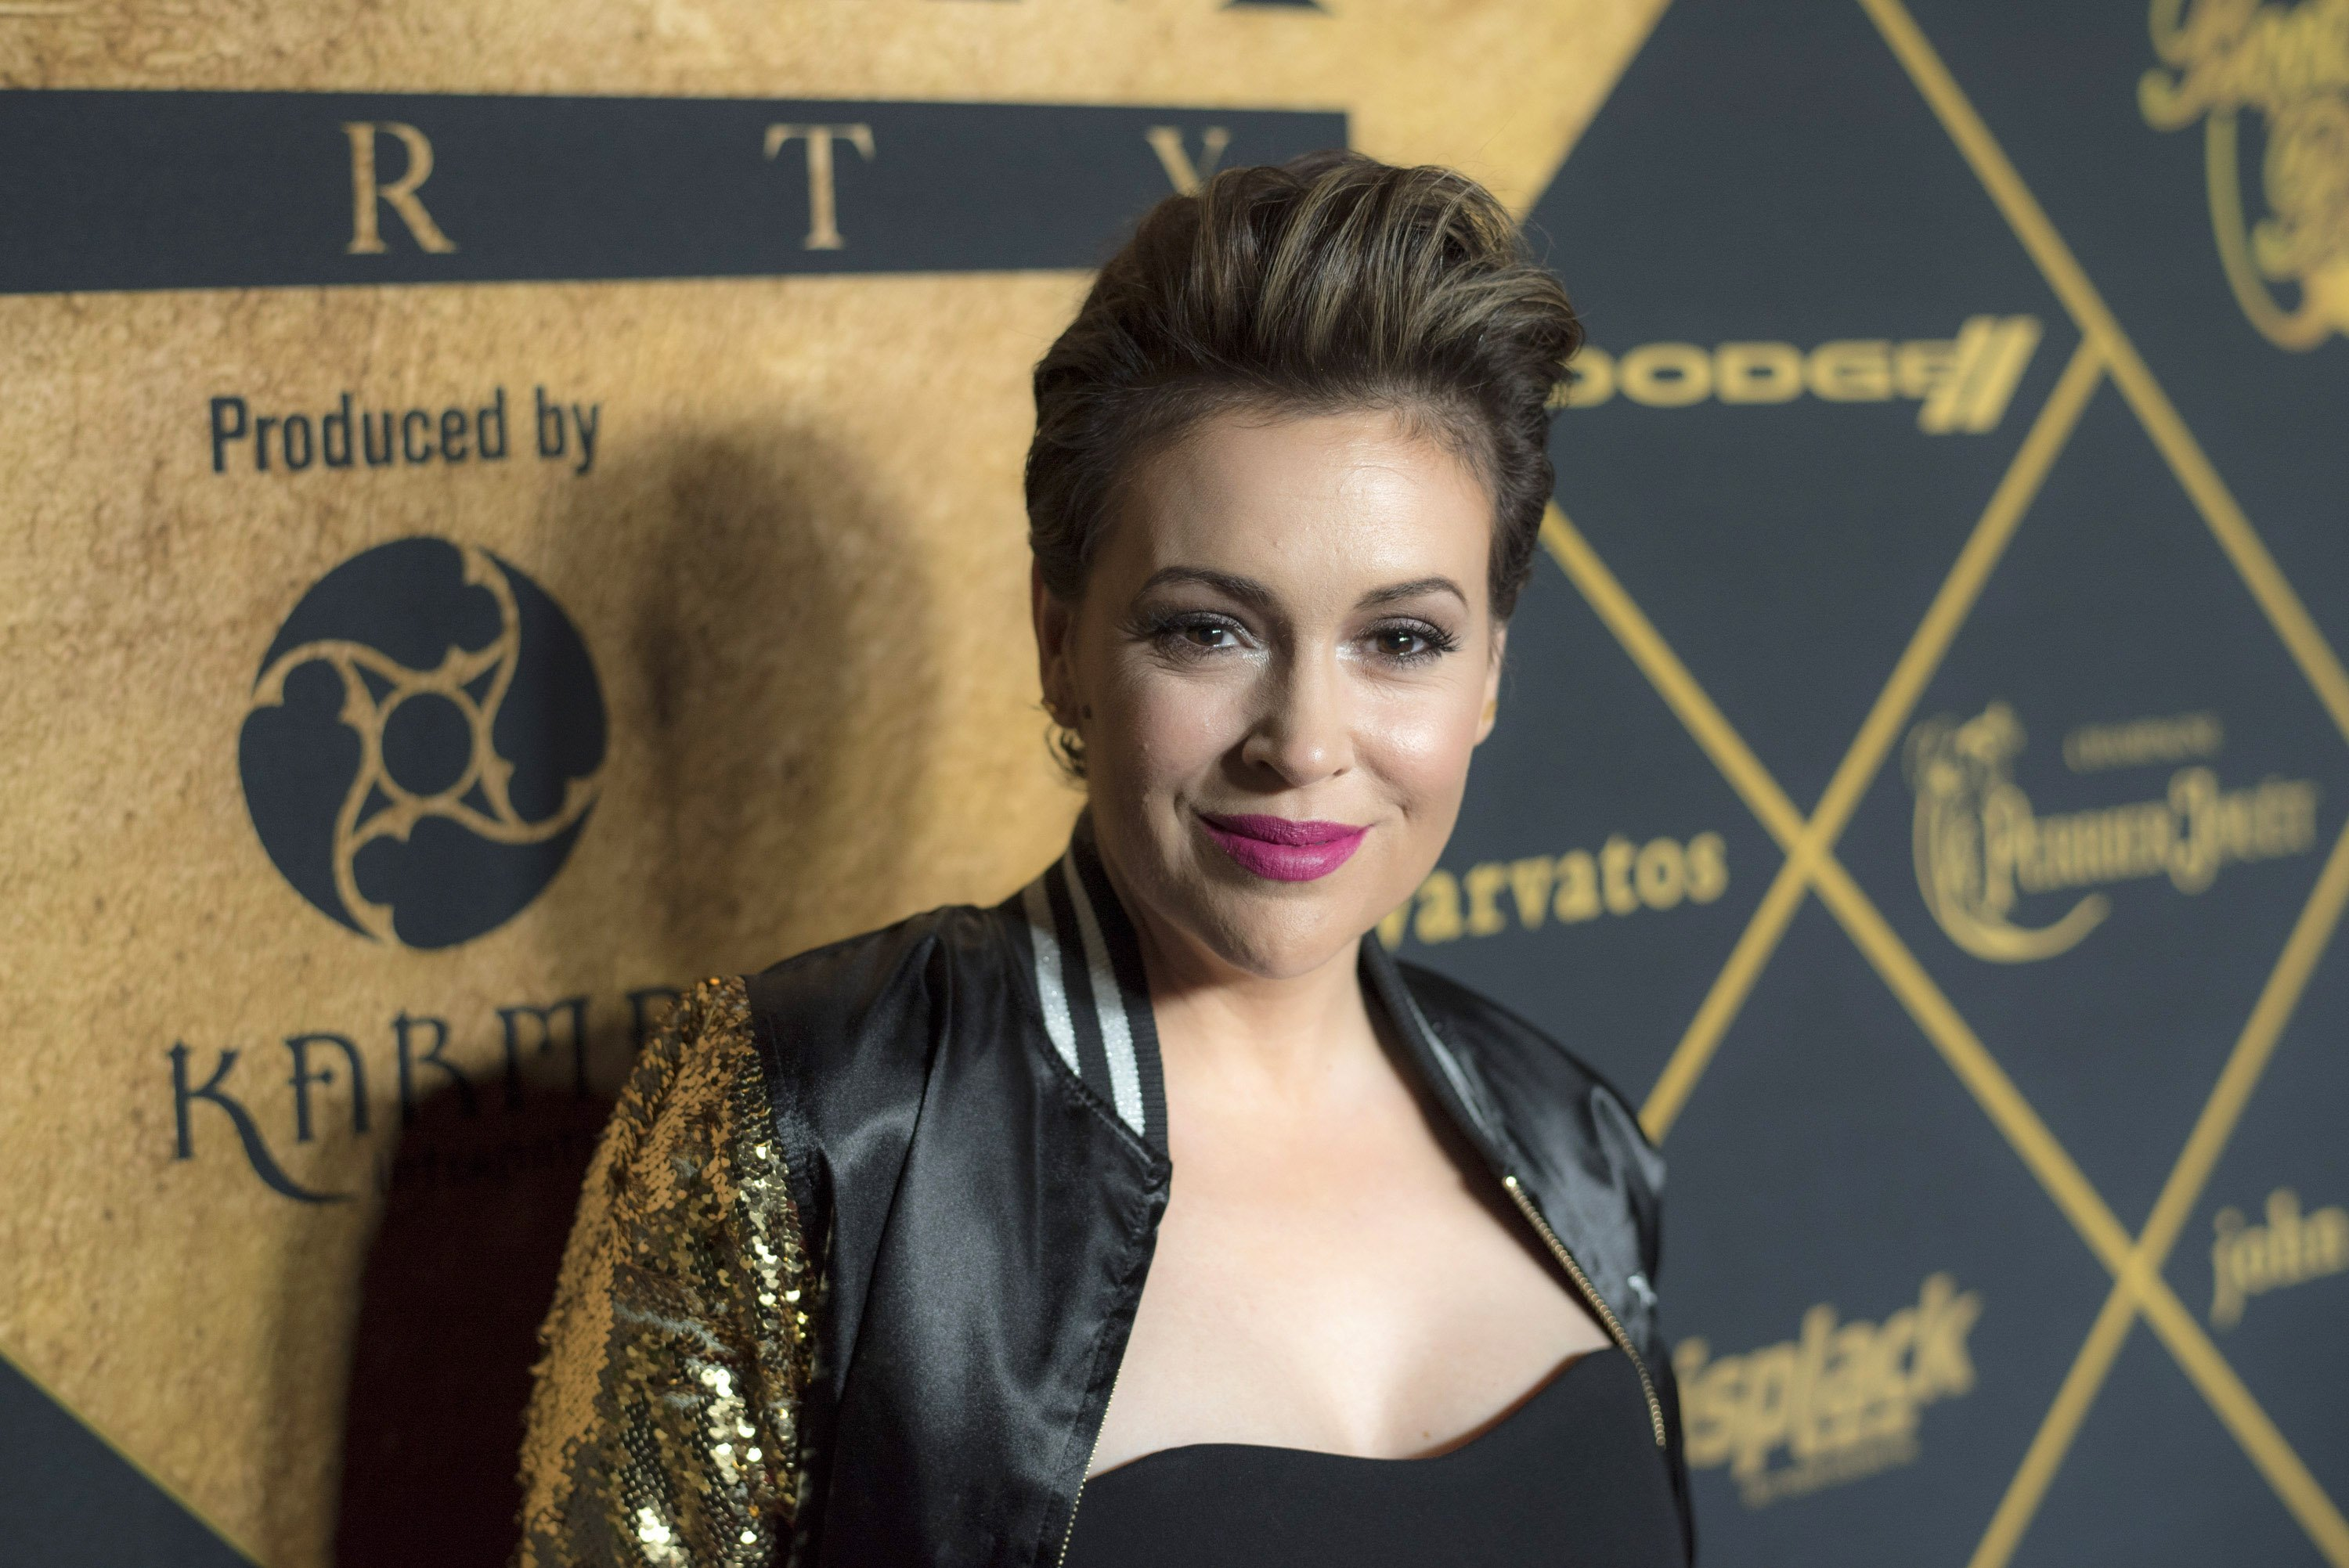 Alyssa Milano attends The 2016 Maxim Party With Bootsy Bellows at Treasure Island on February 6, 2016 | Photo: GettyImages